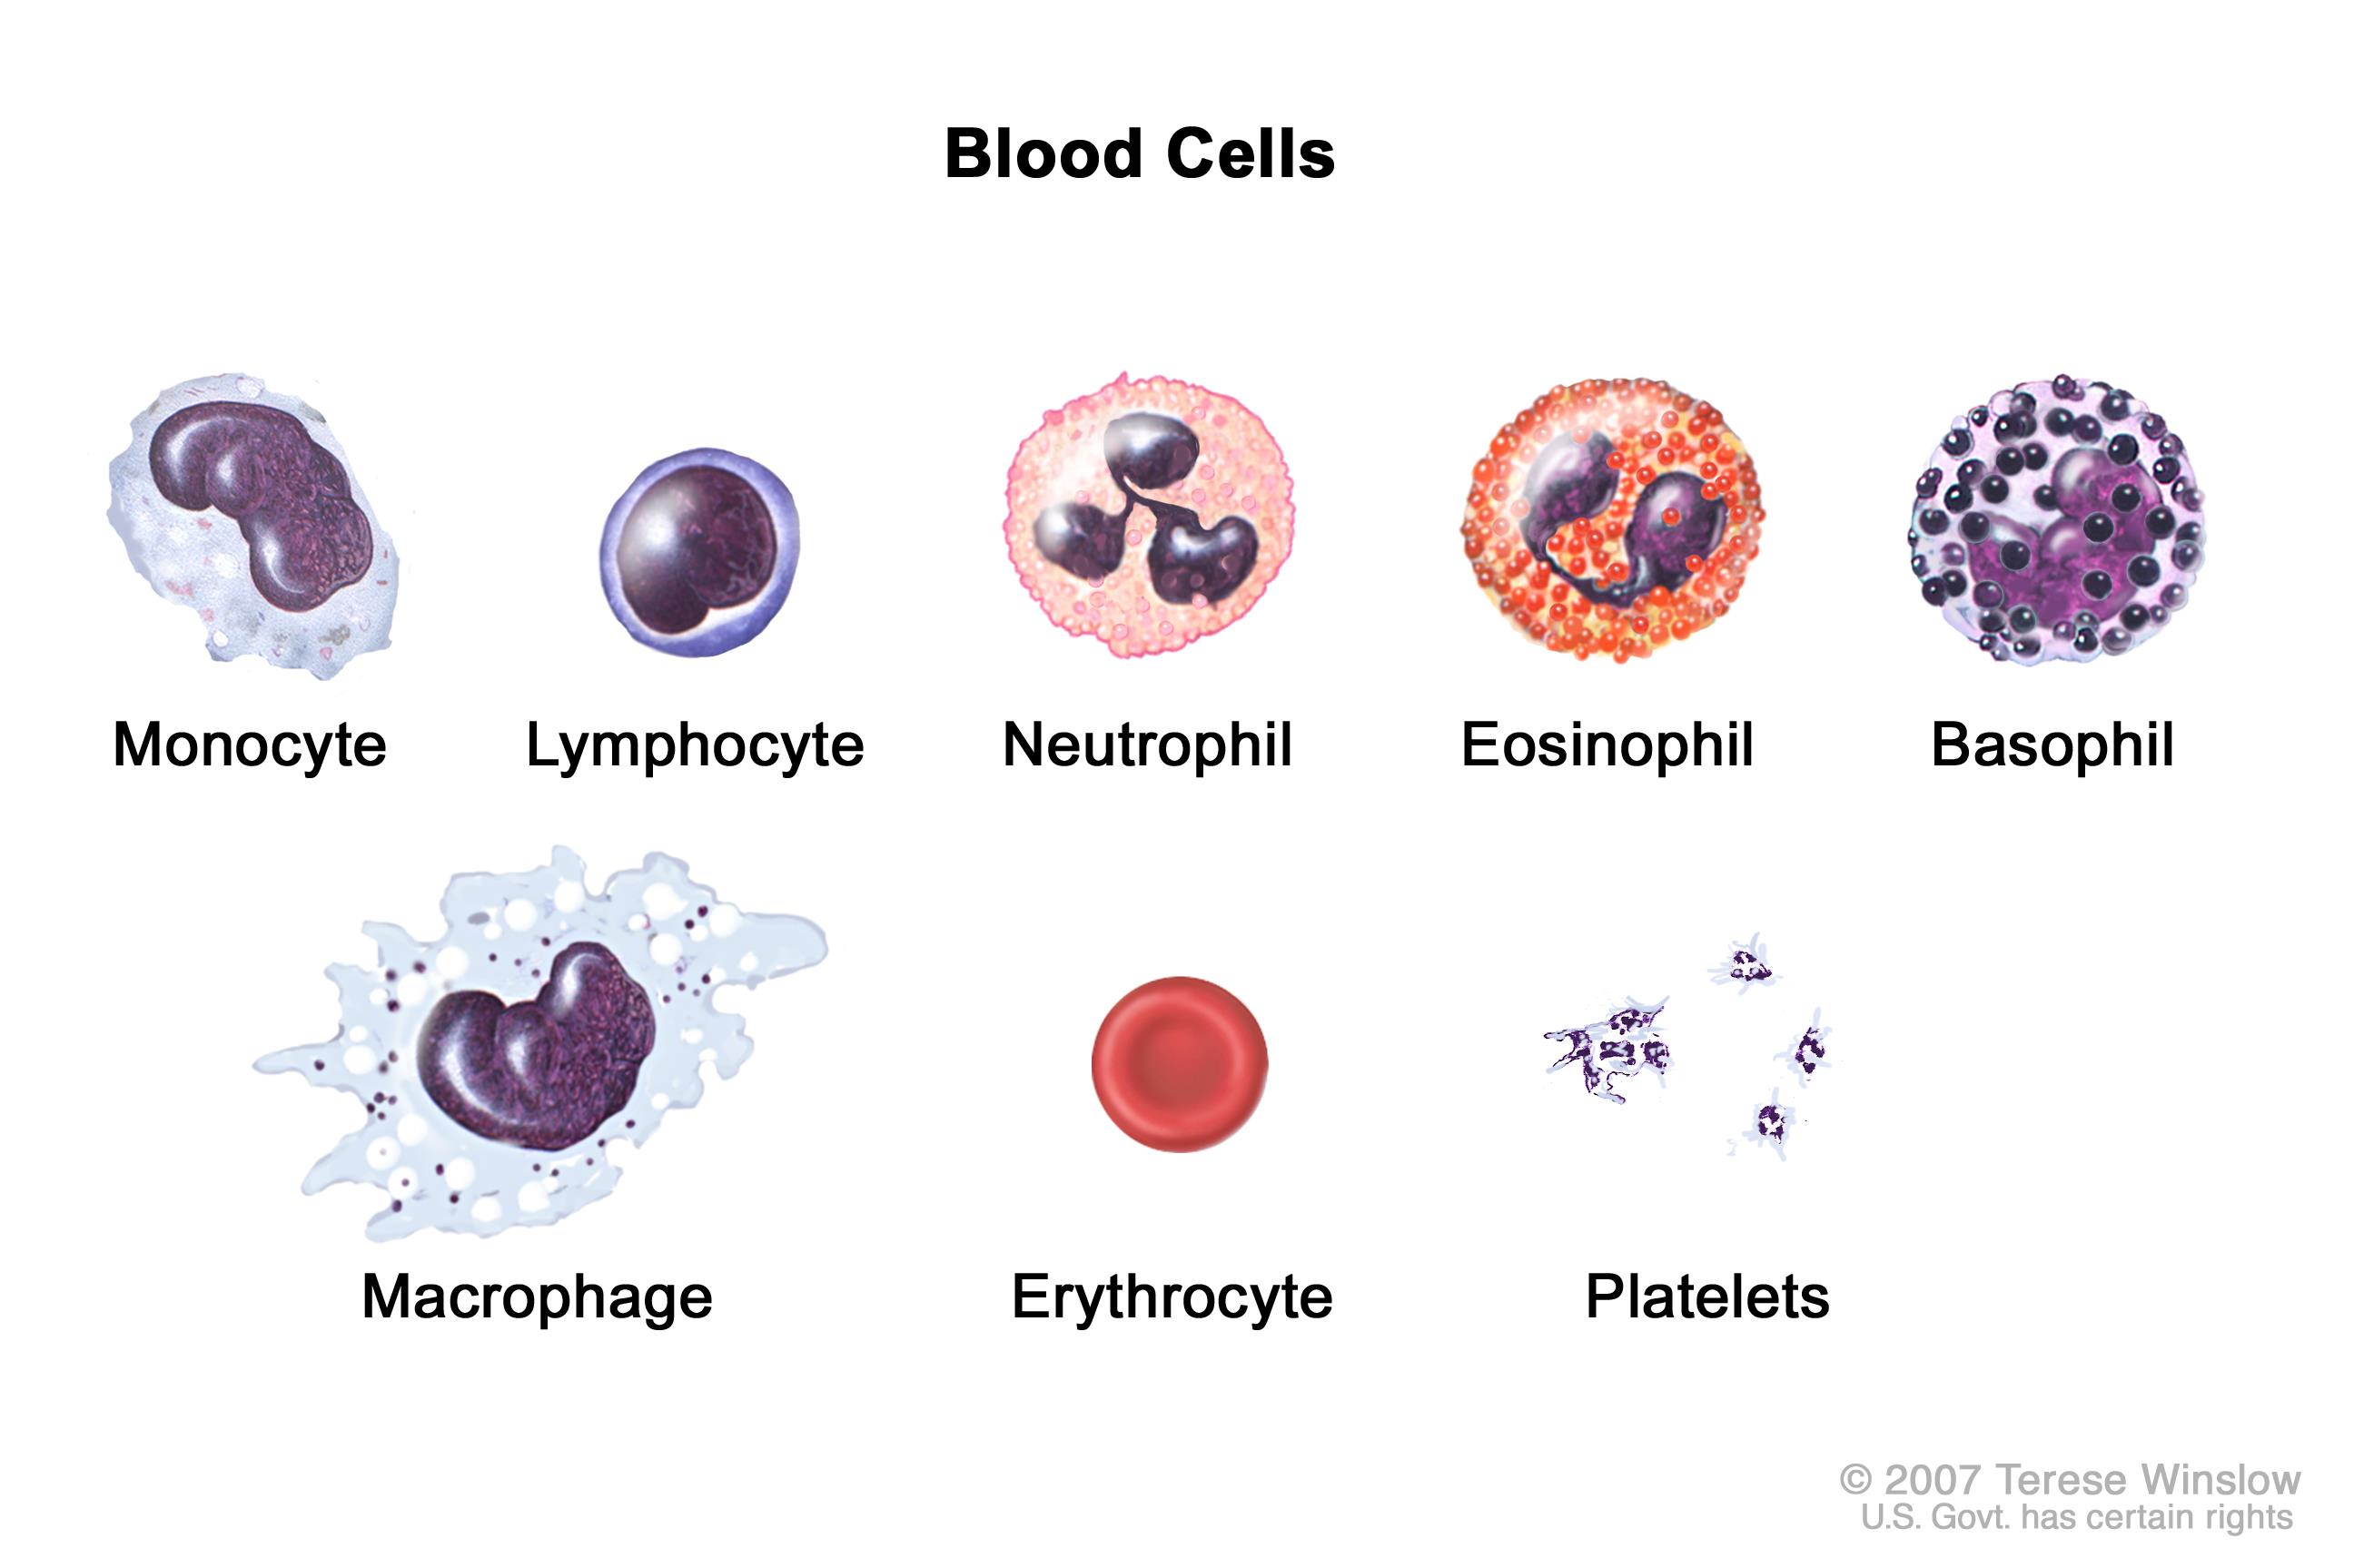 Blood cells; drawing shows six types of white blood cells (monocytes, lymphocytes, neutrophils, eosinophils, basophils, and macrophages), a red blood cell (erythrocyte), and platelets.